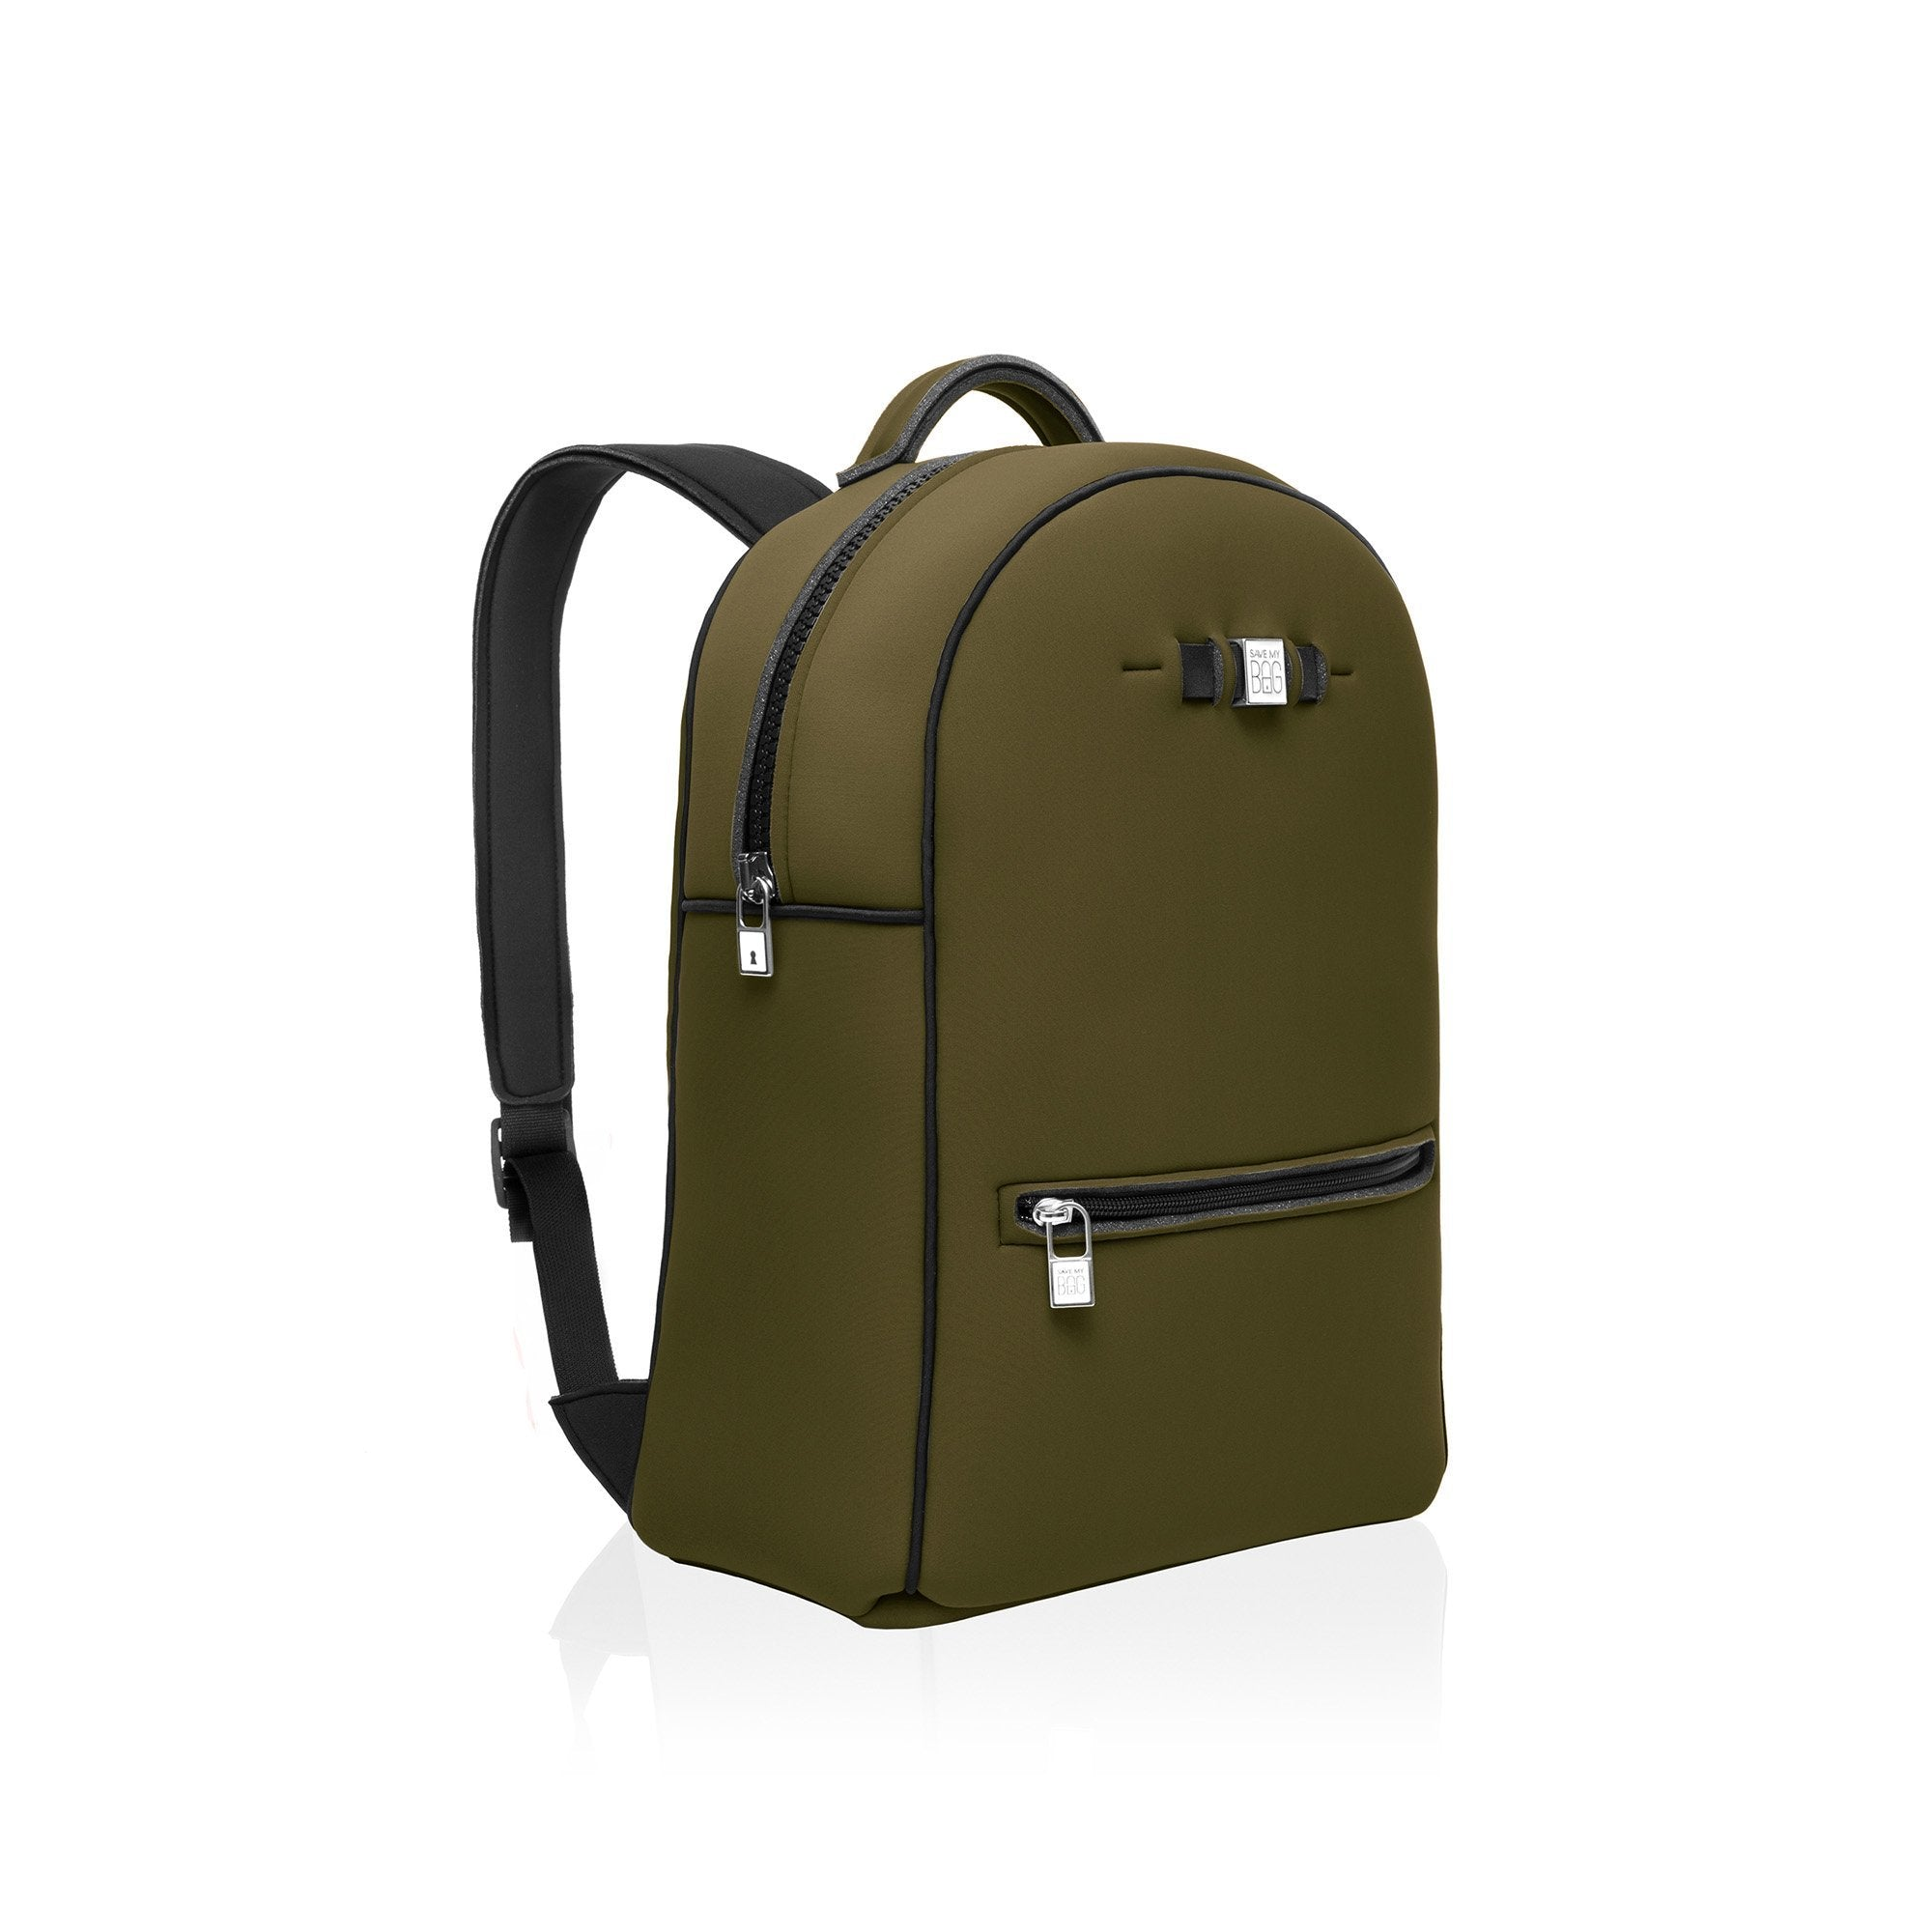 Backpack*